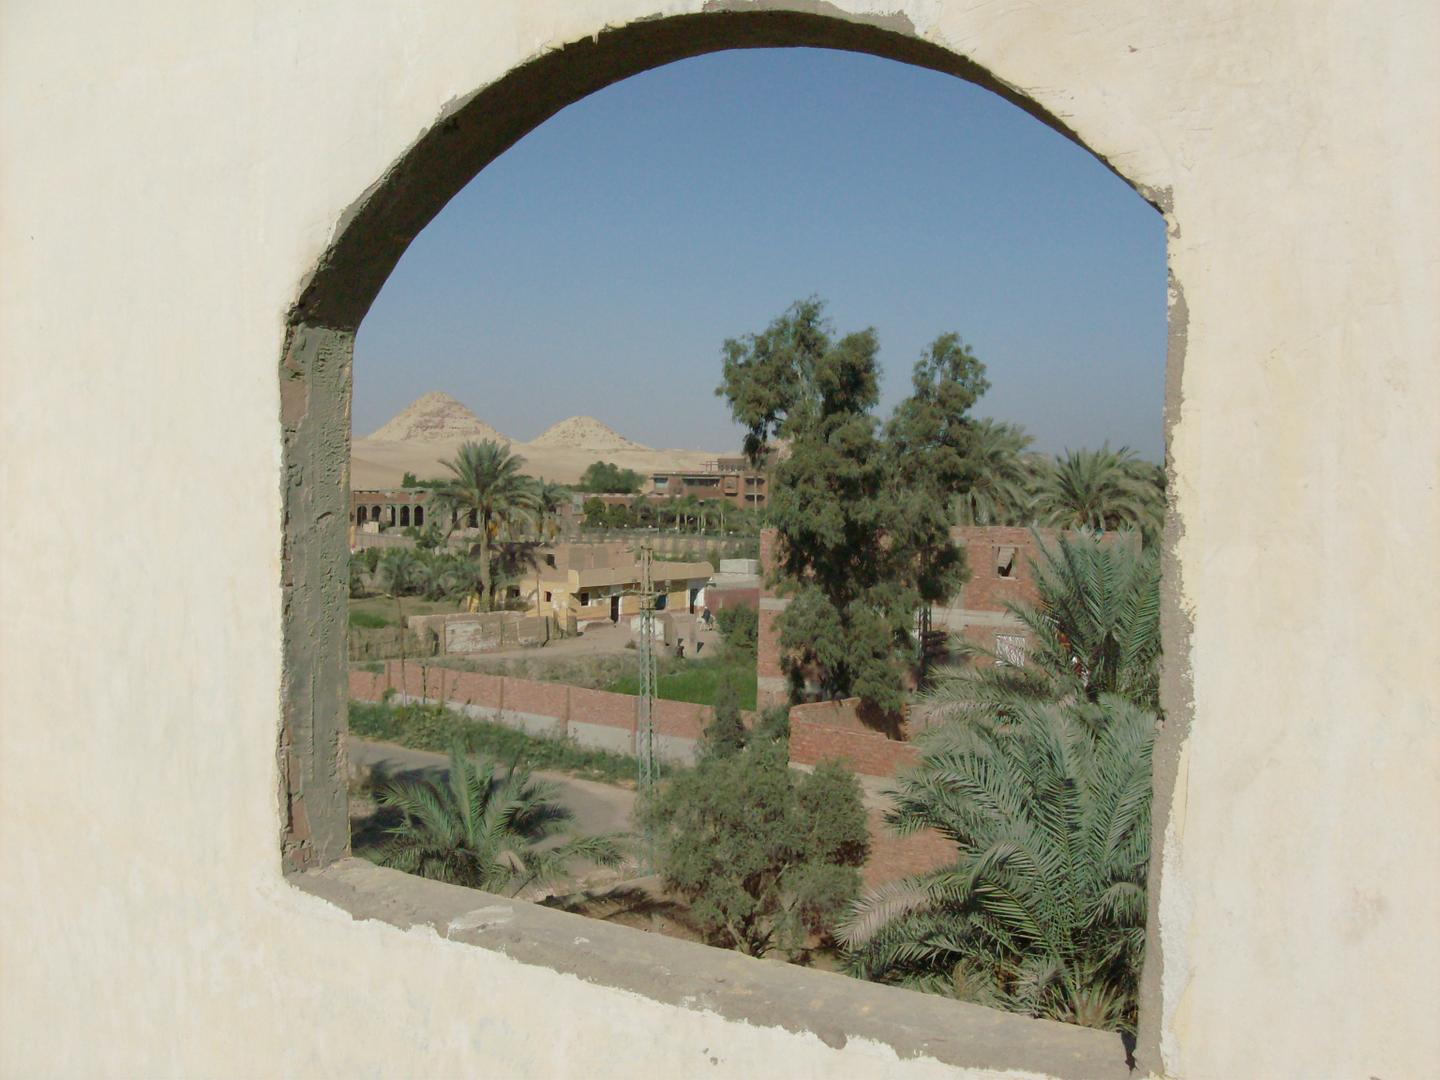 View at Abu Sir pyramids